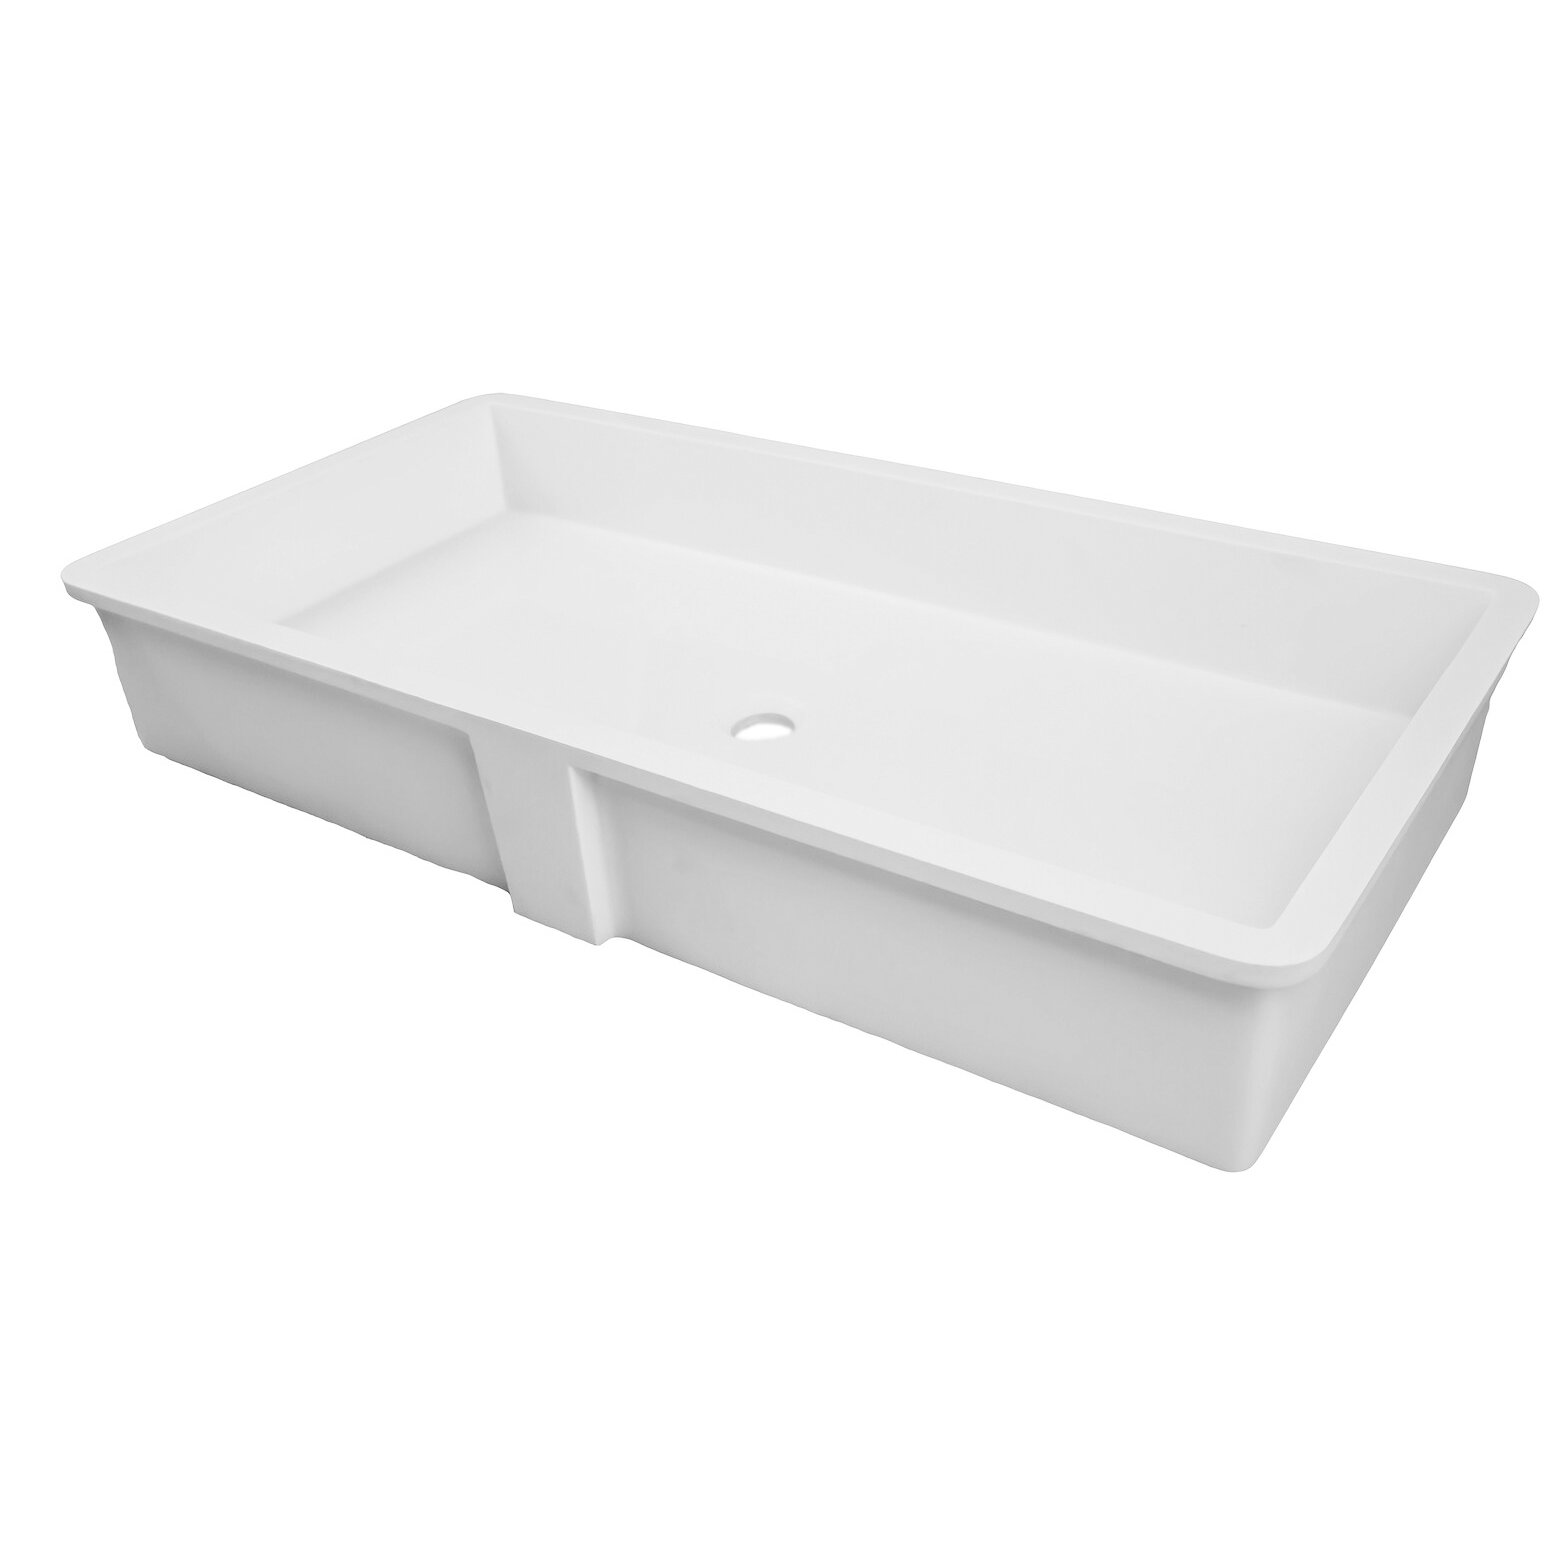 Adm White Countertop Solid Surface Stone Resin Sink Matte Contemporary Bathroom Sinks